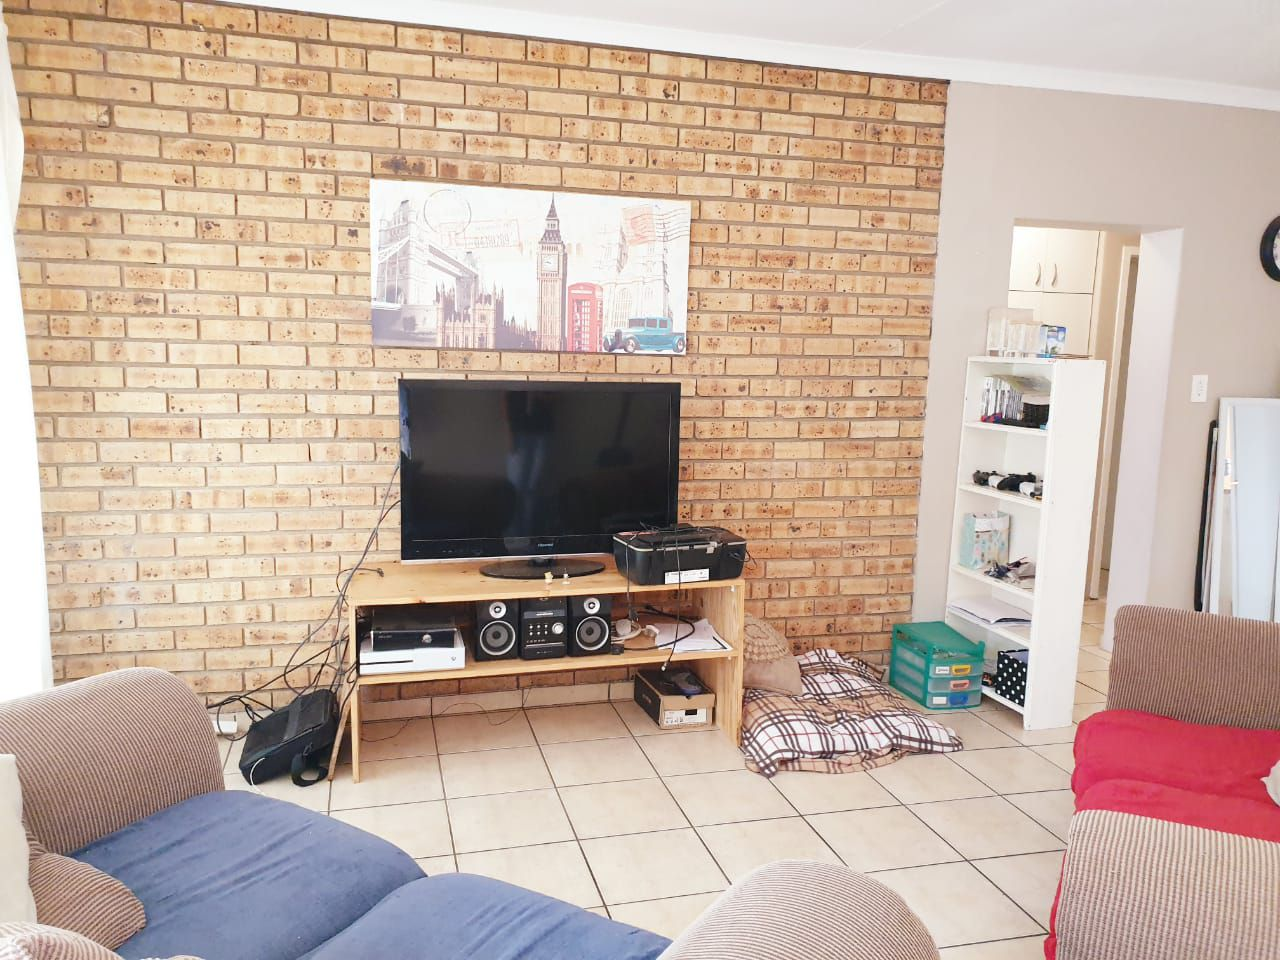 House in Bult - WhatsApp Image 2019-08-26 at 15.11.30 (5).jpeg